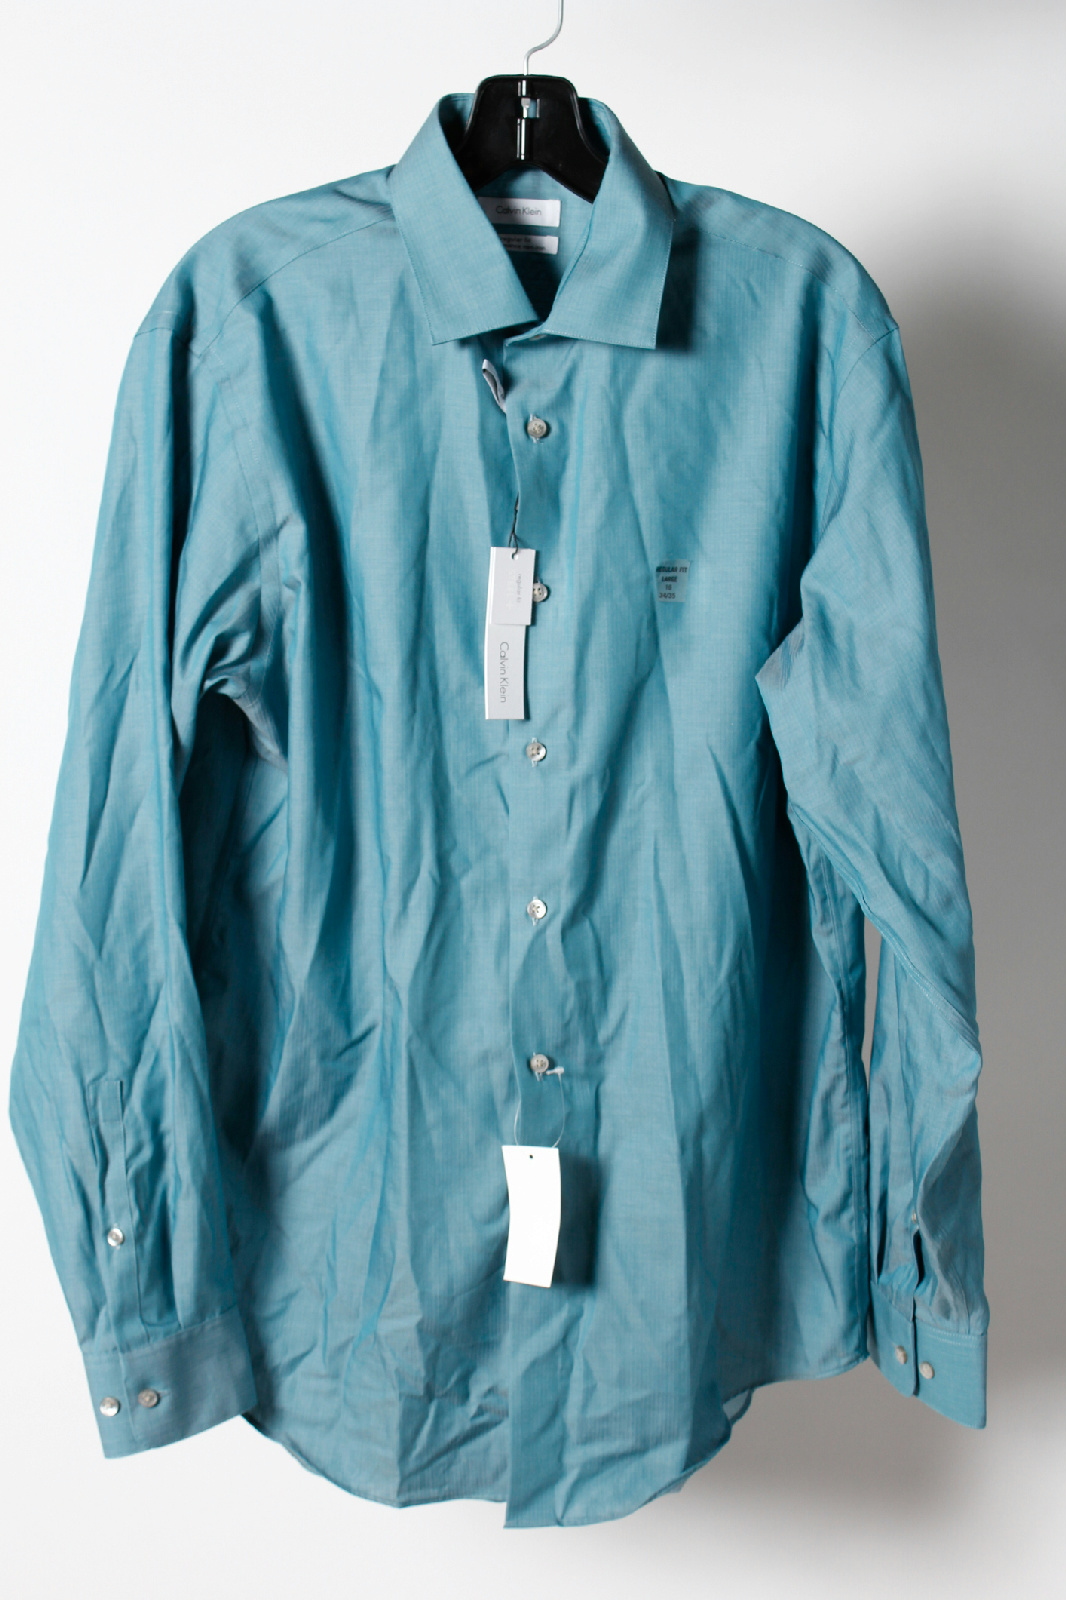 It's always easy to shop for Teal Dress Shirts at rutor-org.ga because you can browse by best sellers, brand, price range, customer rating, or special offers. And you can take advantage of free shipping within USA.